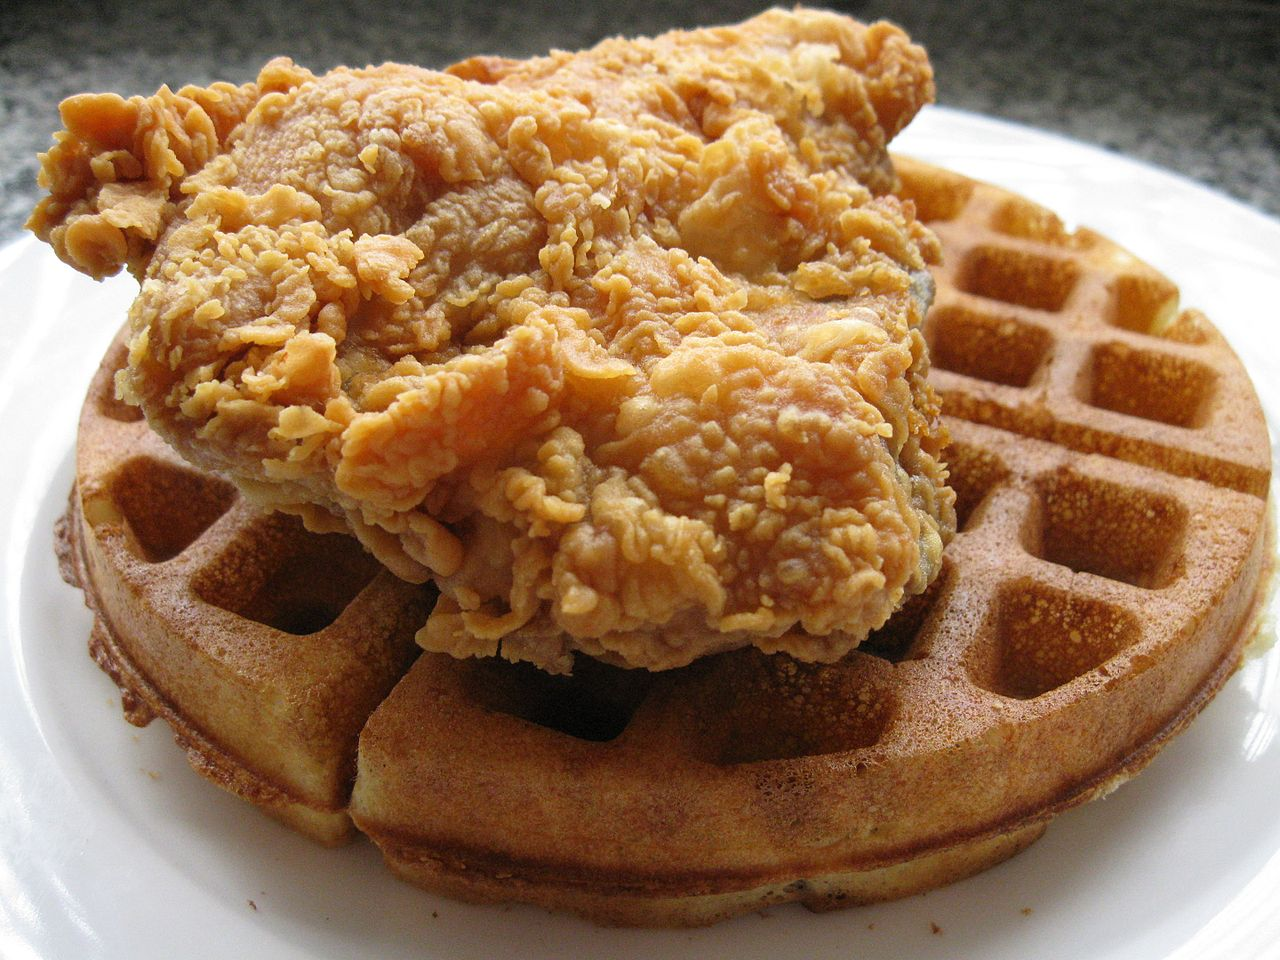 Chicken And Waffles Food Truck